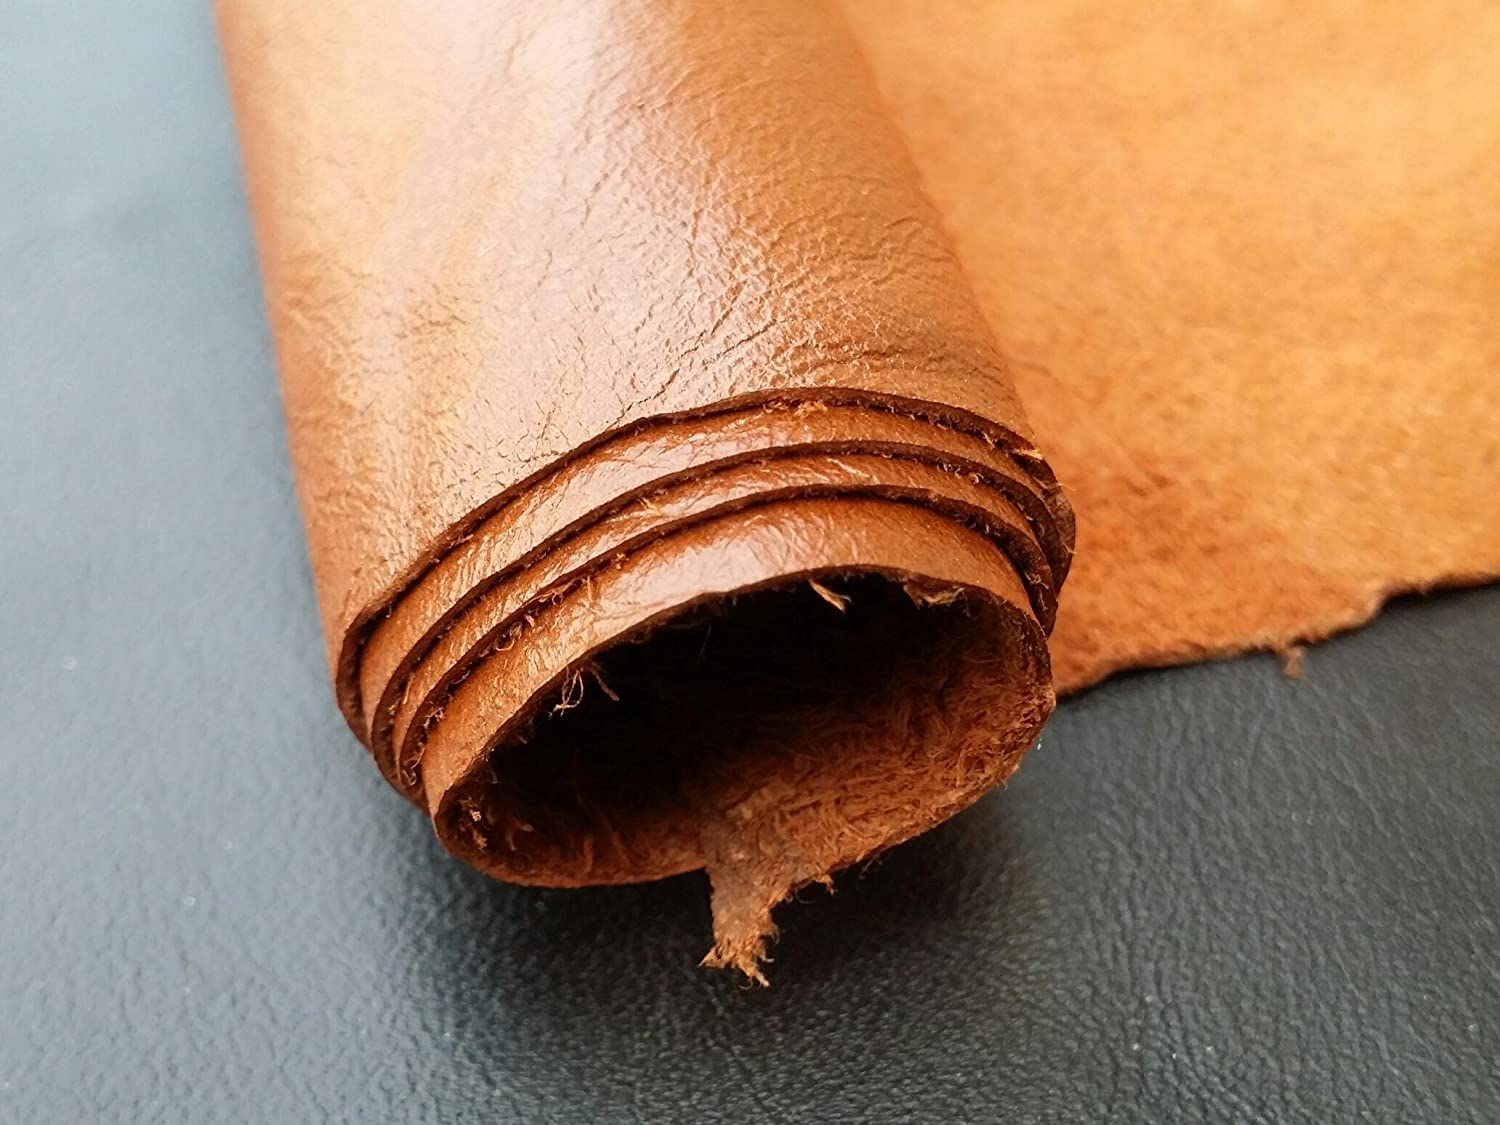 Natural Cow leather Piece 12 X 24 Inches 2 Square Feet Approximately 0.8-1.2 MM Thickness, or 2.5 Oz REED